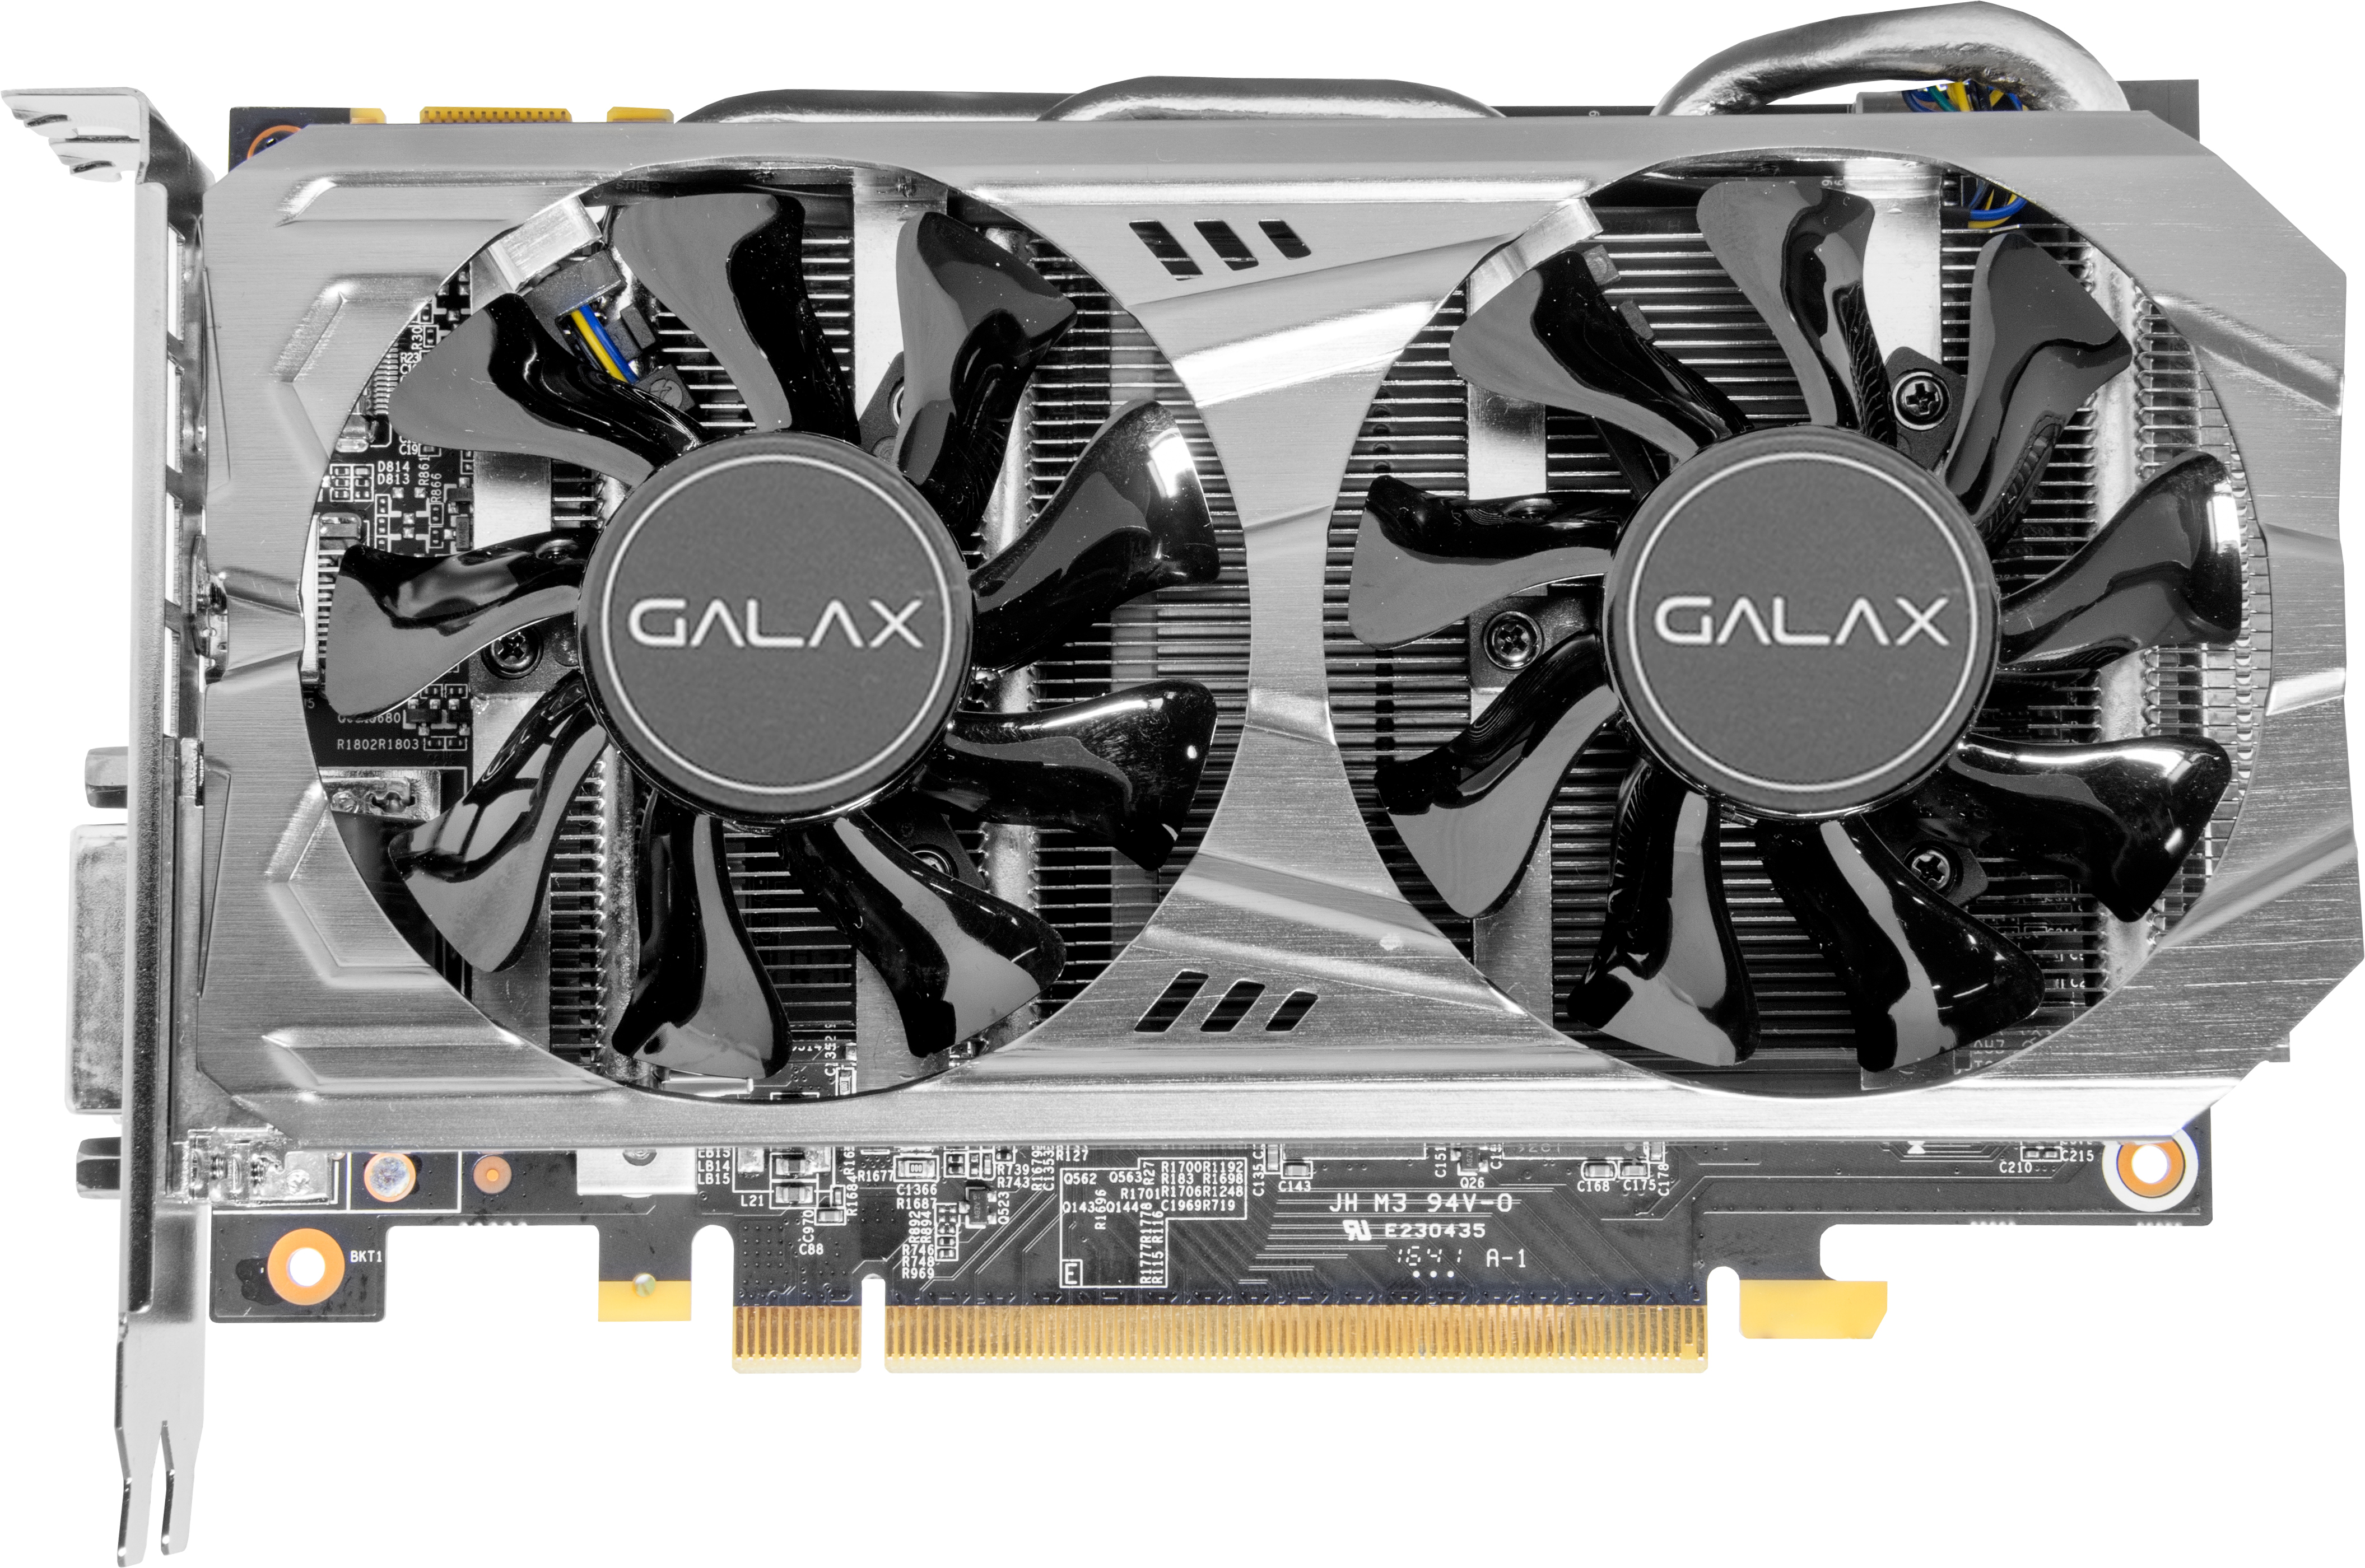 Palit Launches GeForce GTX 1070 for Mini-ITX PCs with GALAX and KFA2